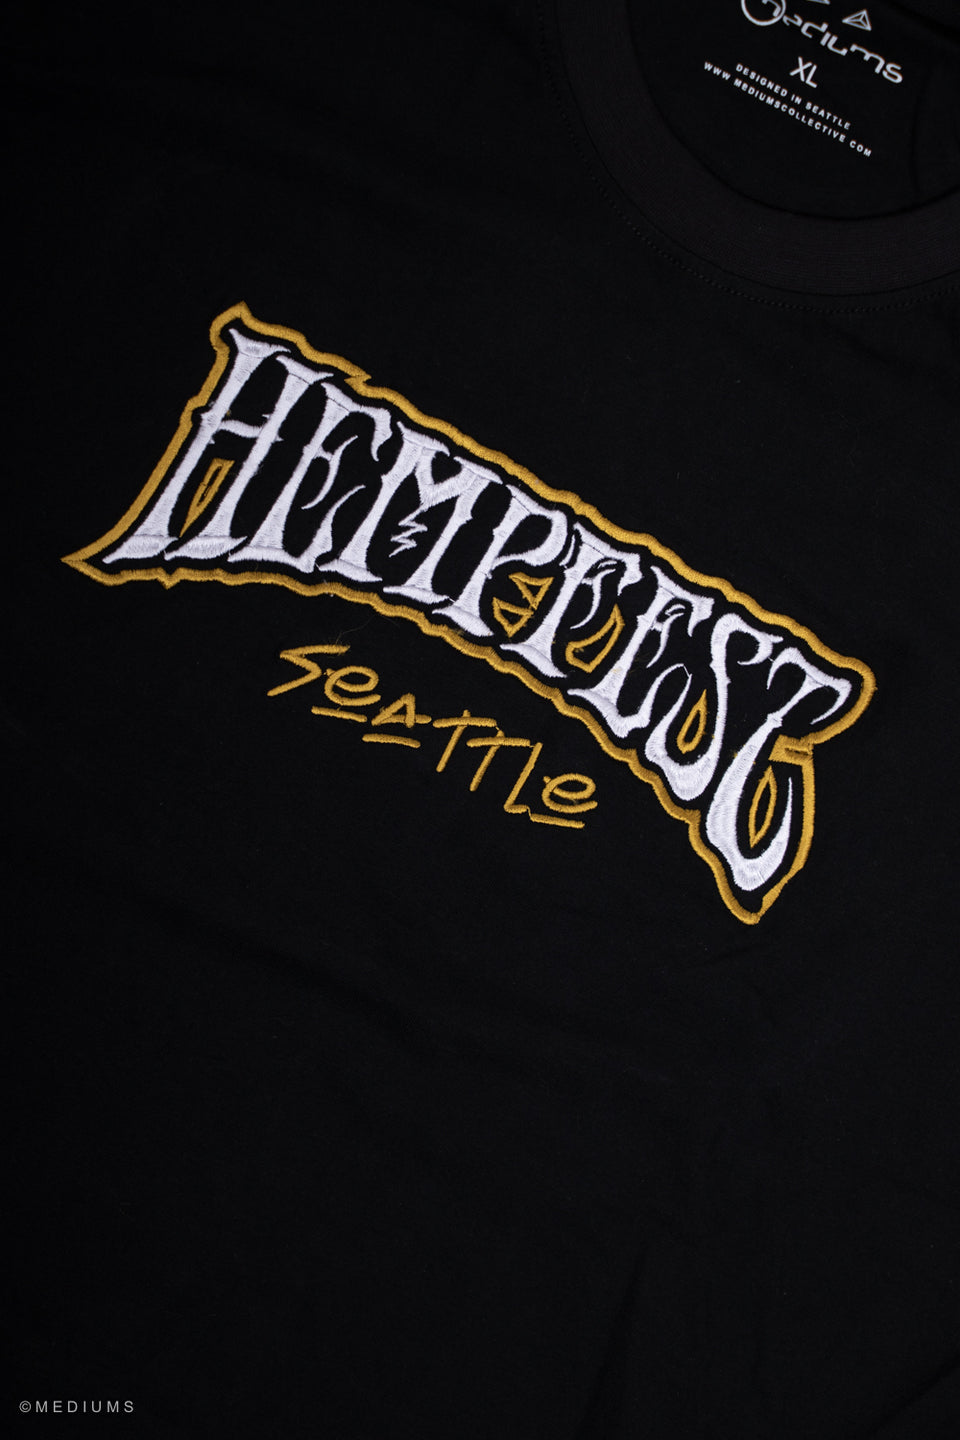 Hempfest T'shirt - Black